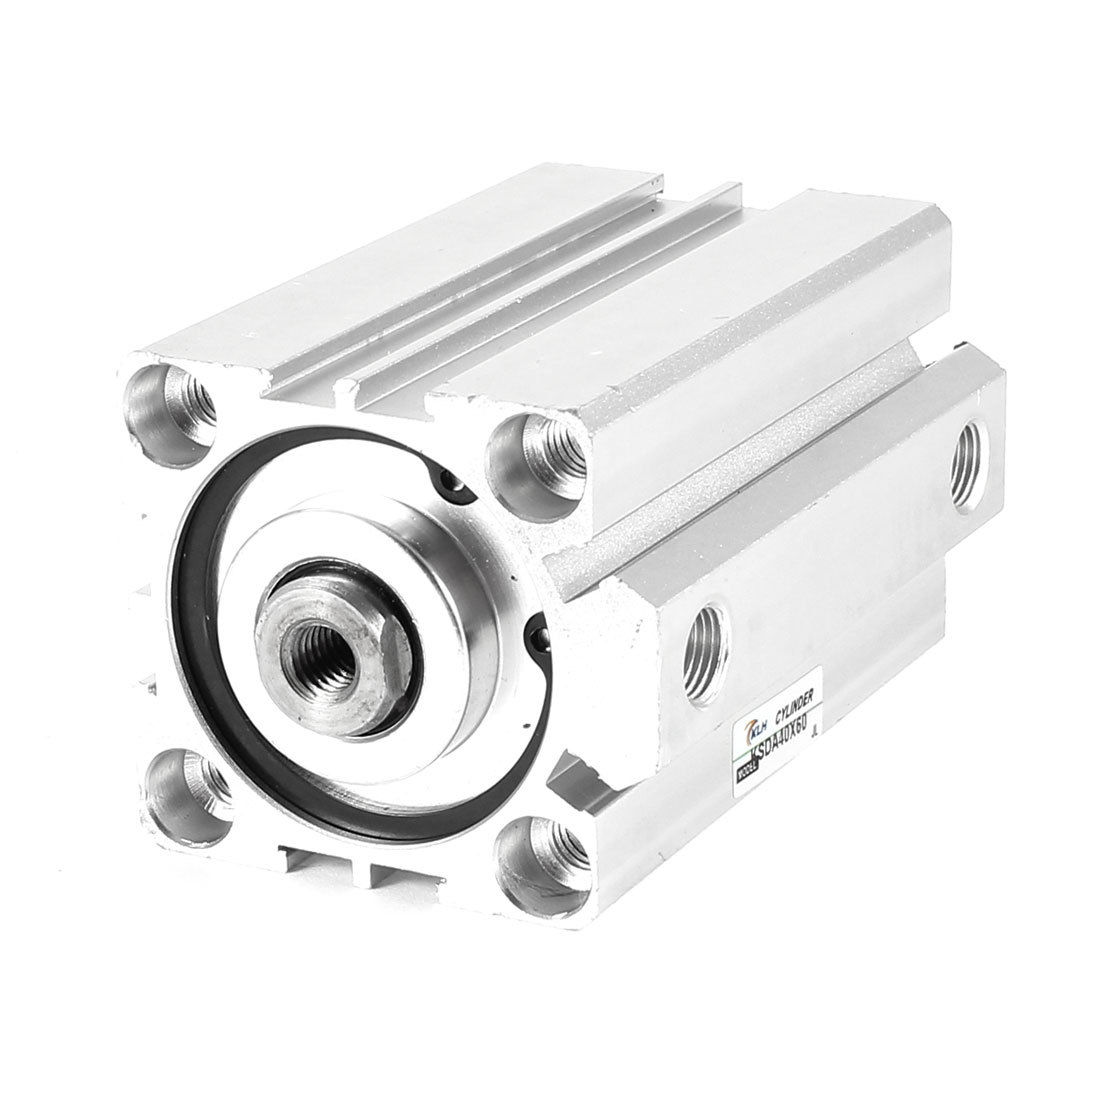 1 Pcs 63mm Bore 35mm Stroke Stainless steel Pneumatic Air Cylinder SDA63-351 Pcs 63mm Bore 35mm Stroke Stainless steel Pneumatic Air Cylinder SDA63-35